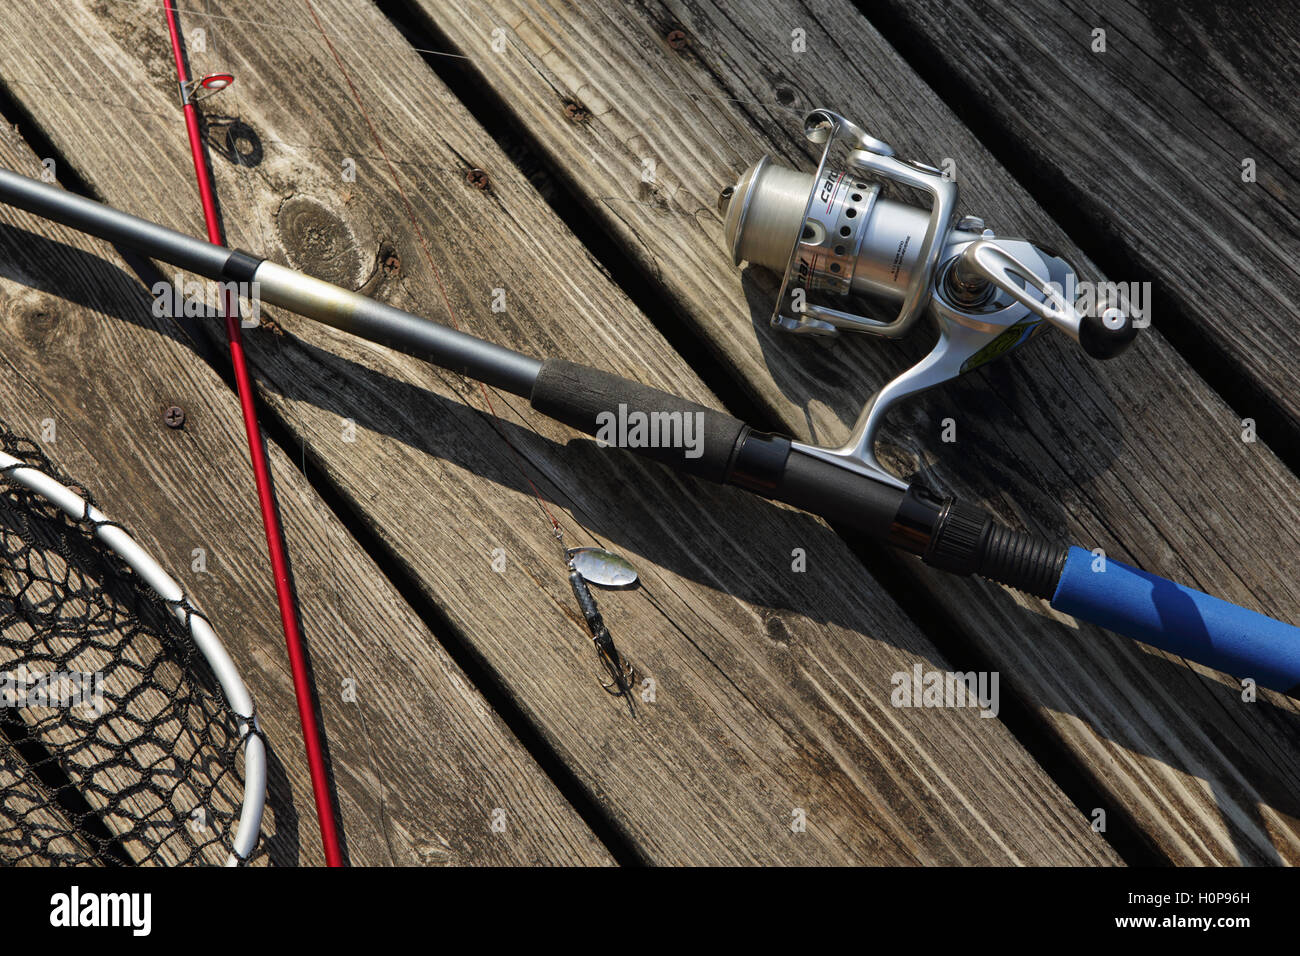 Fishing rod, reel, and net on a wooden landing beside a Vermont lake - Stock Image